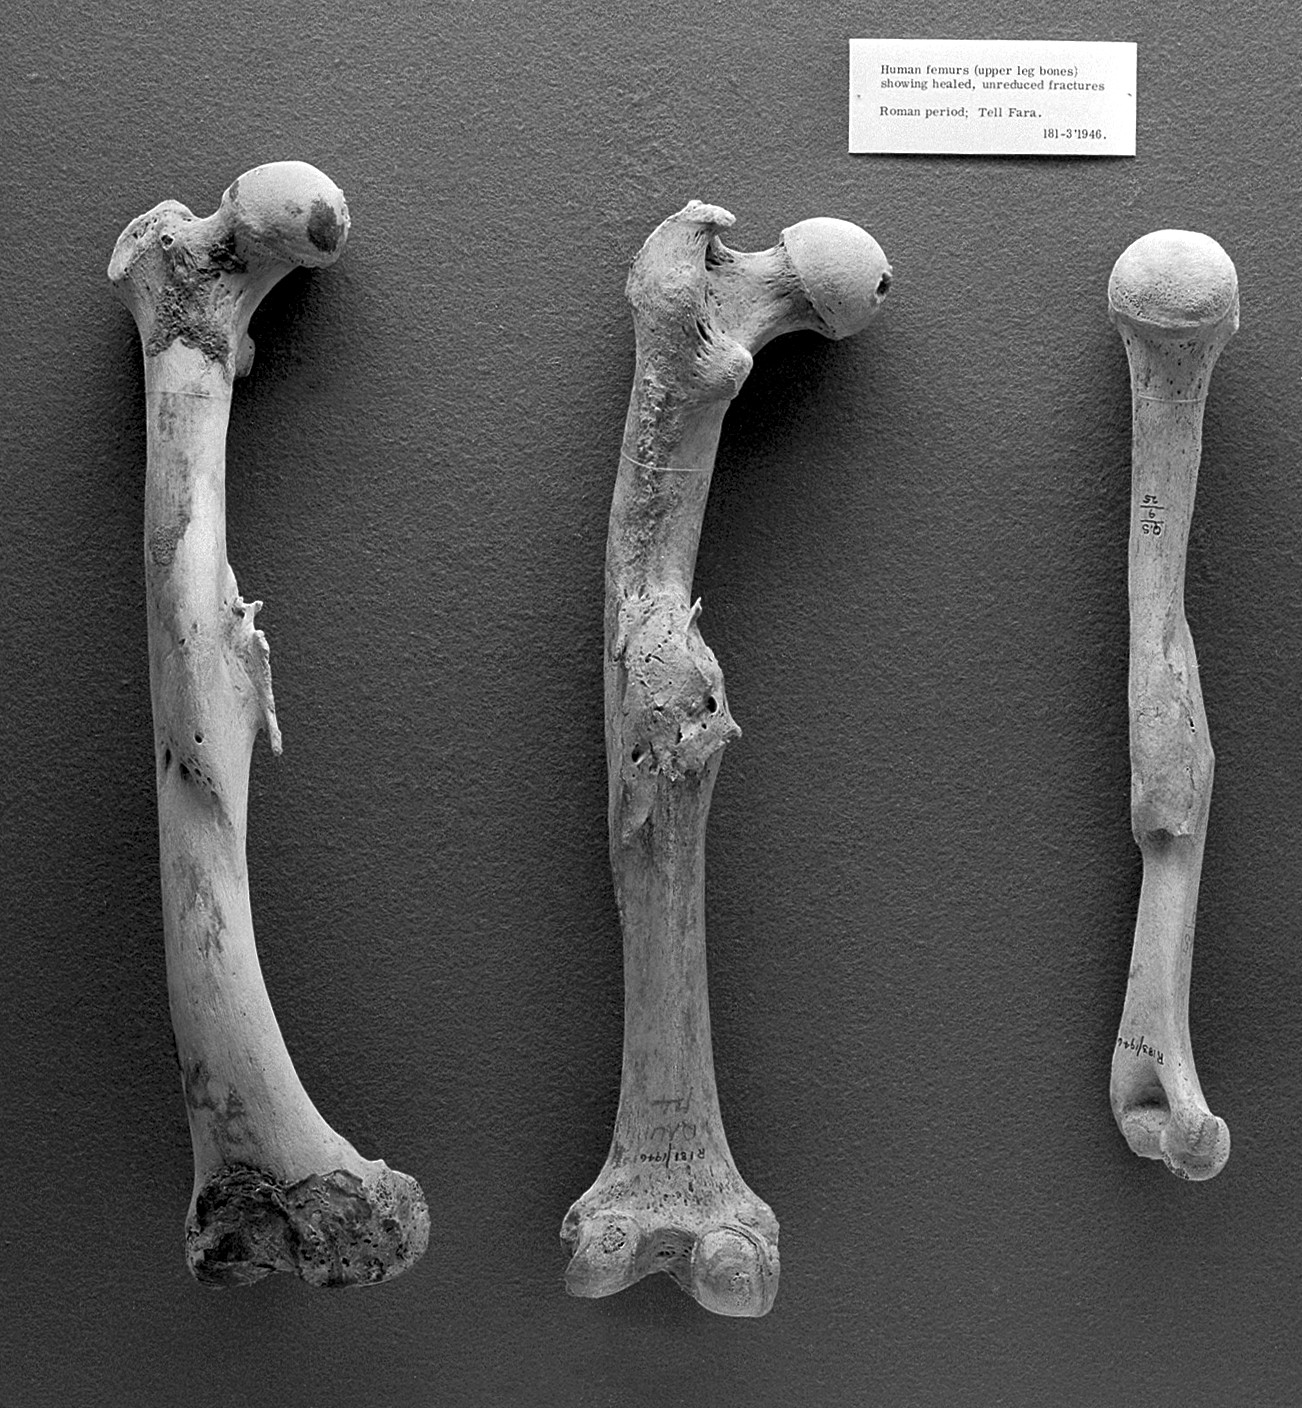 Crushed Human Bone : Broken bones untreated